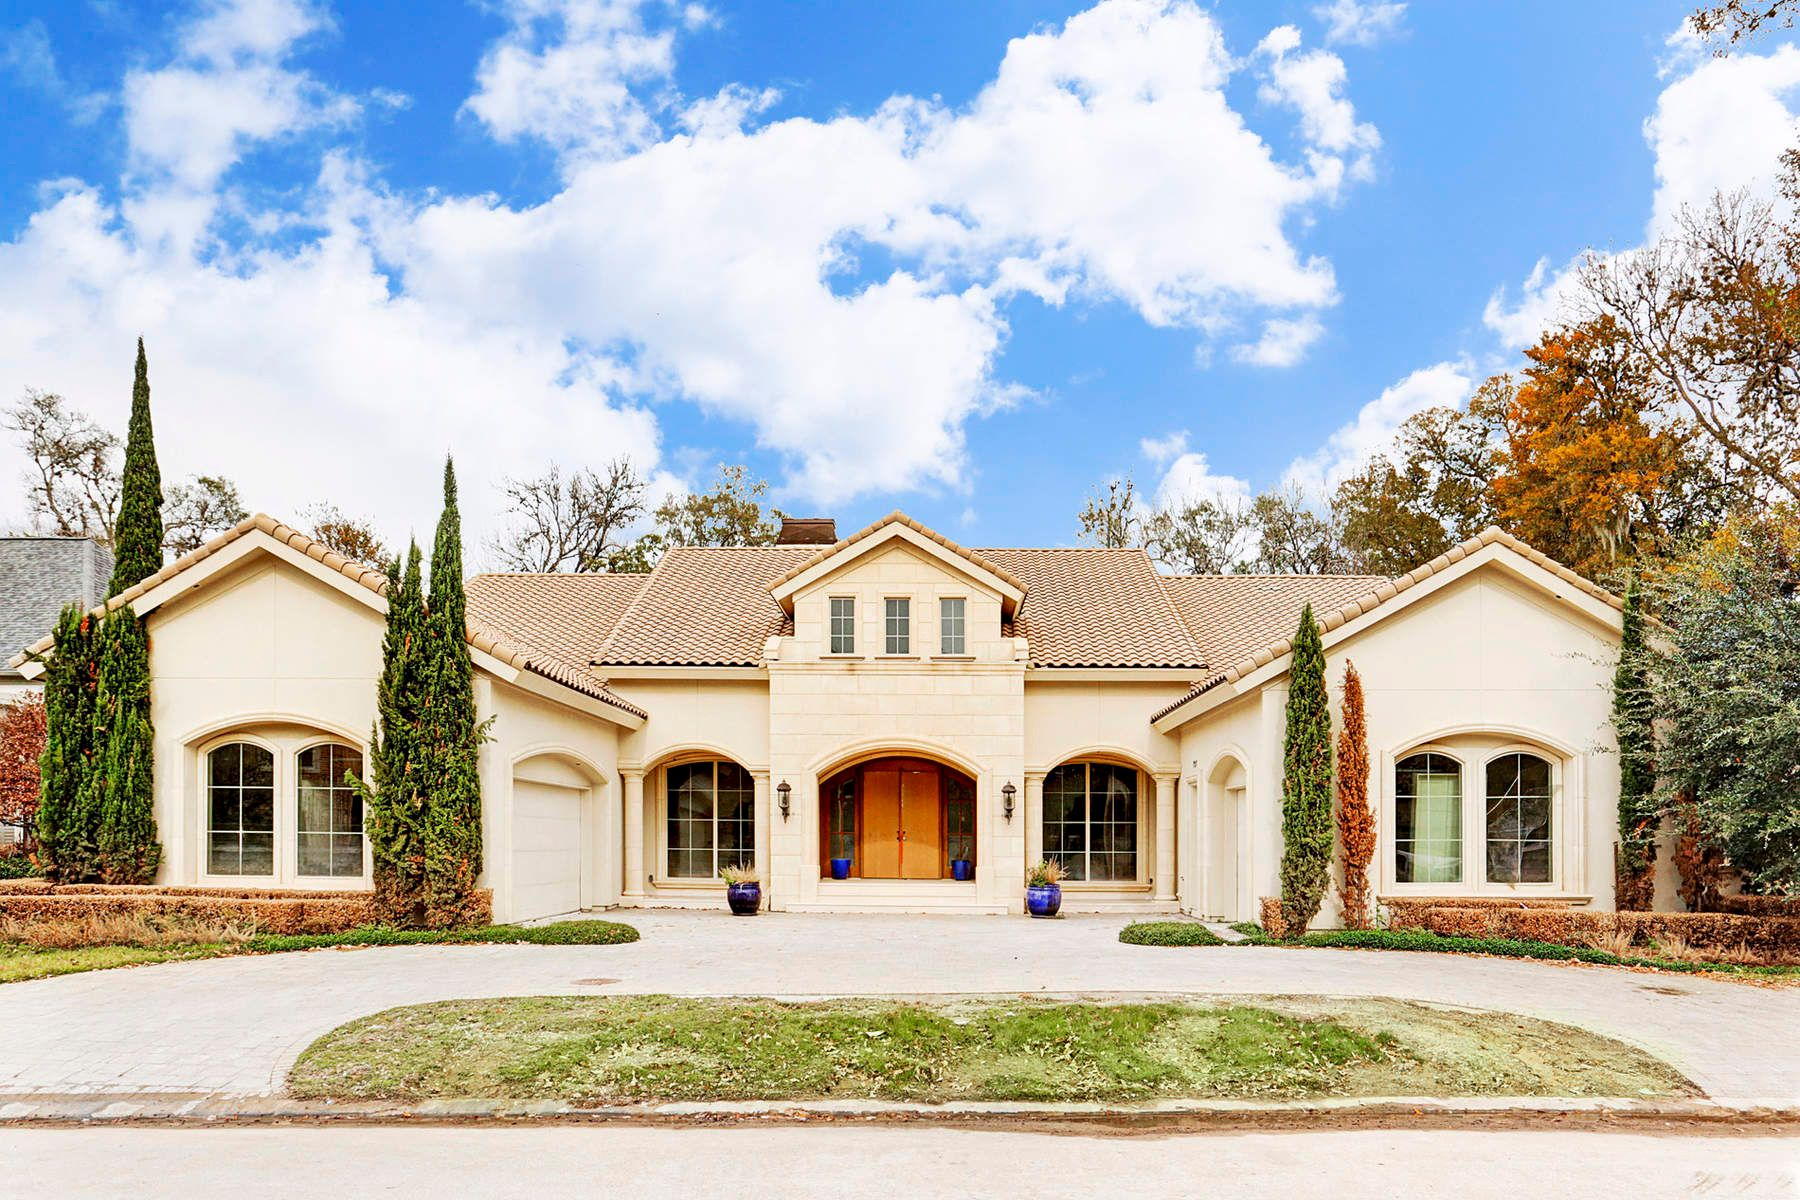 Single Family Home for Sale at 727 Marywood Chase Street Energy Corridor, Houston, Texas, 77079 United States